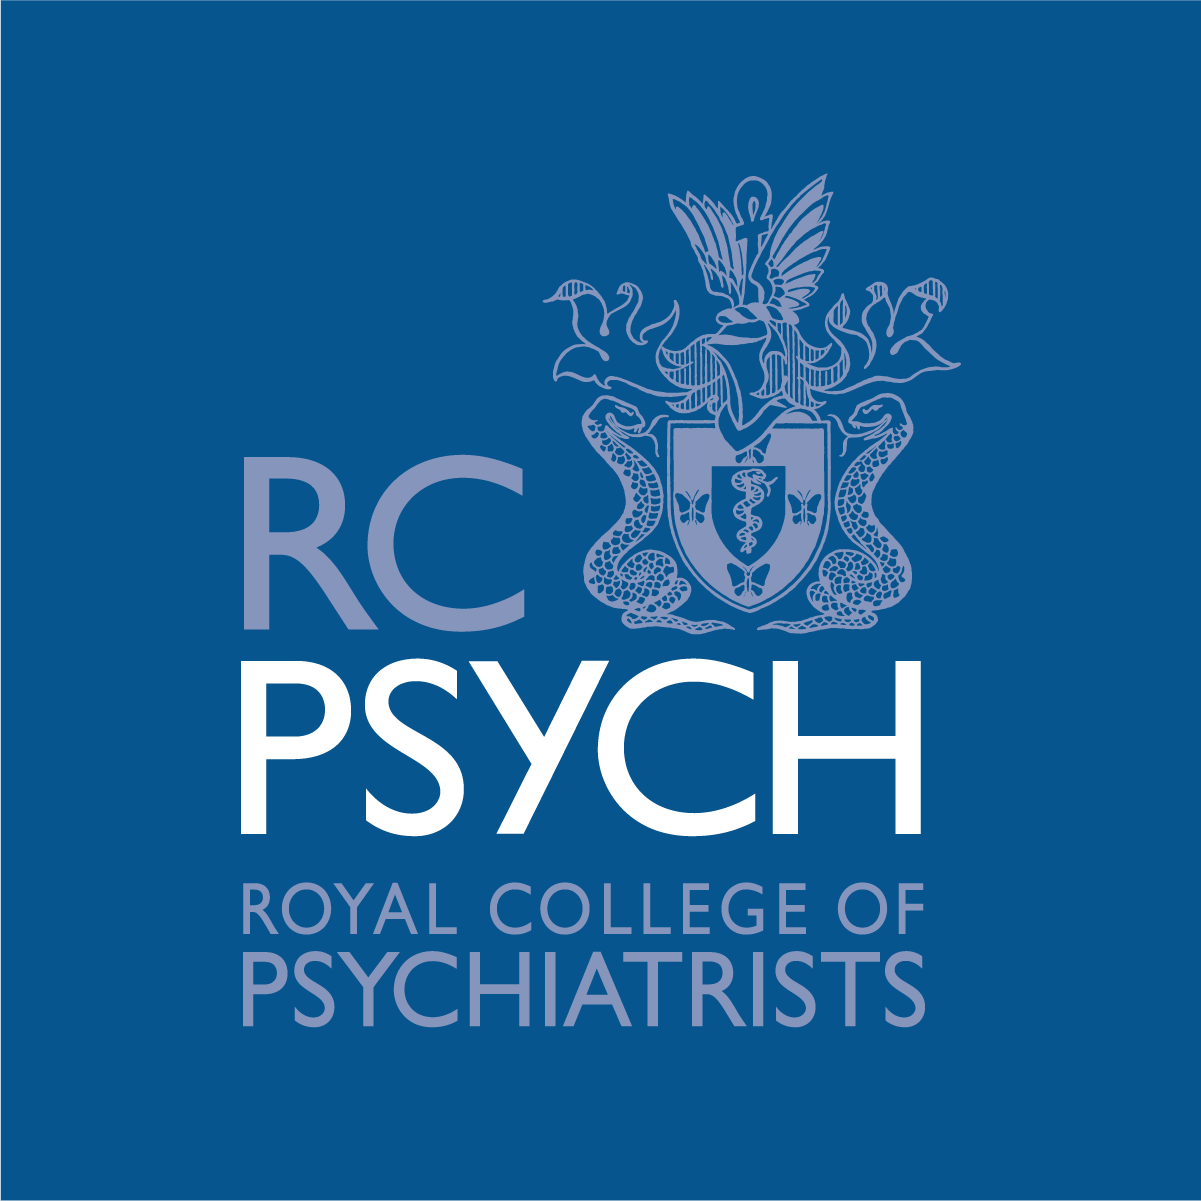 Royal College of Psychiatrists - They are the professional medical body responsible for supporting psychiatrists throughout their careers from training through to retirement, and in setting and raising standards of psychiatry in the United Kingdom.Steve has been a member of the Patient & Carer Committee and West Midlands Executive Committee since mid 2014.